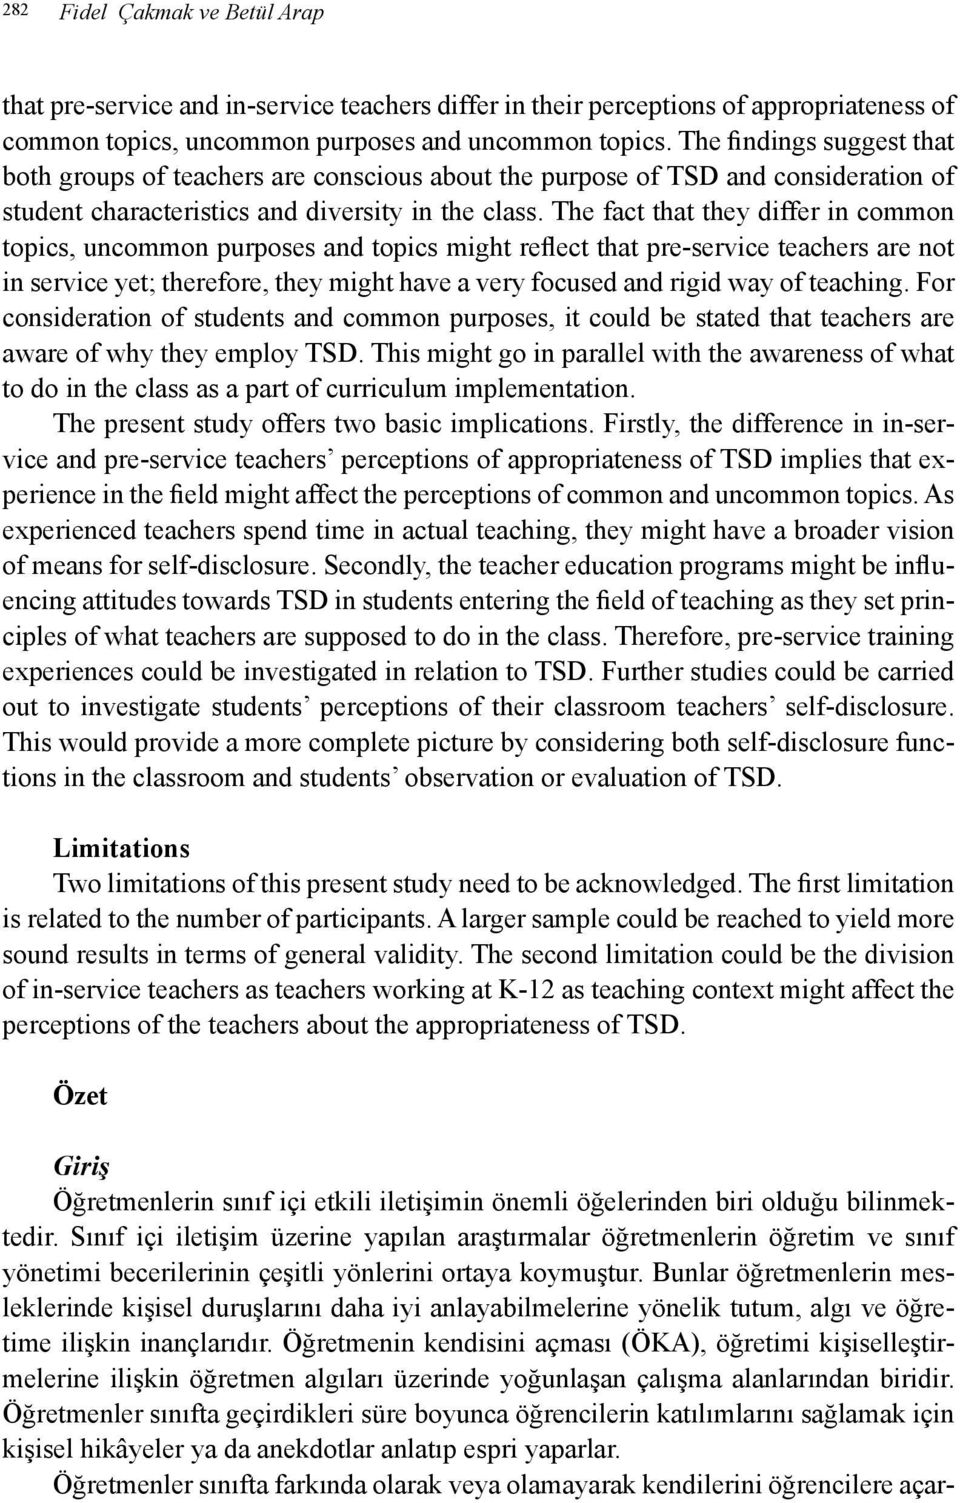 The fact that they differ in common topics, uncommon purposes and topics might reflect that pre-service teachers are not in service yet; therefore, they might have a very focused and rigid way of